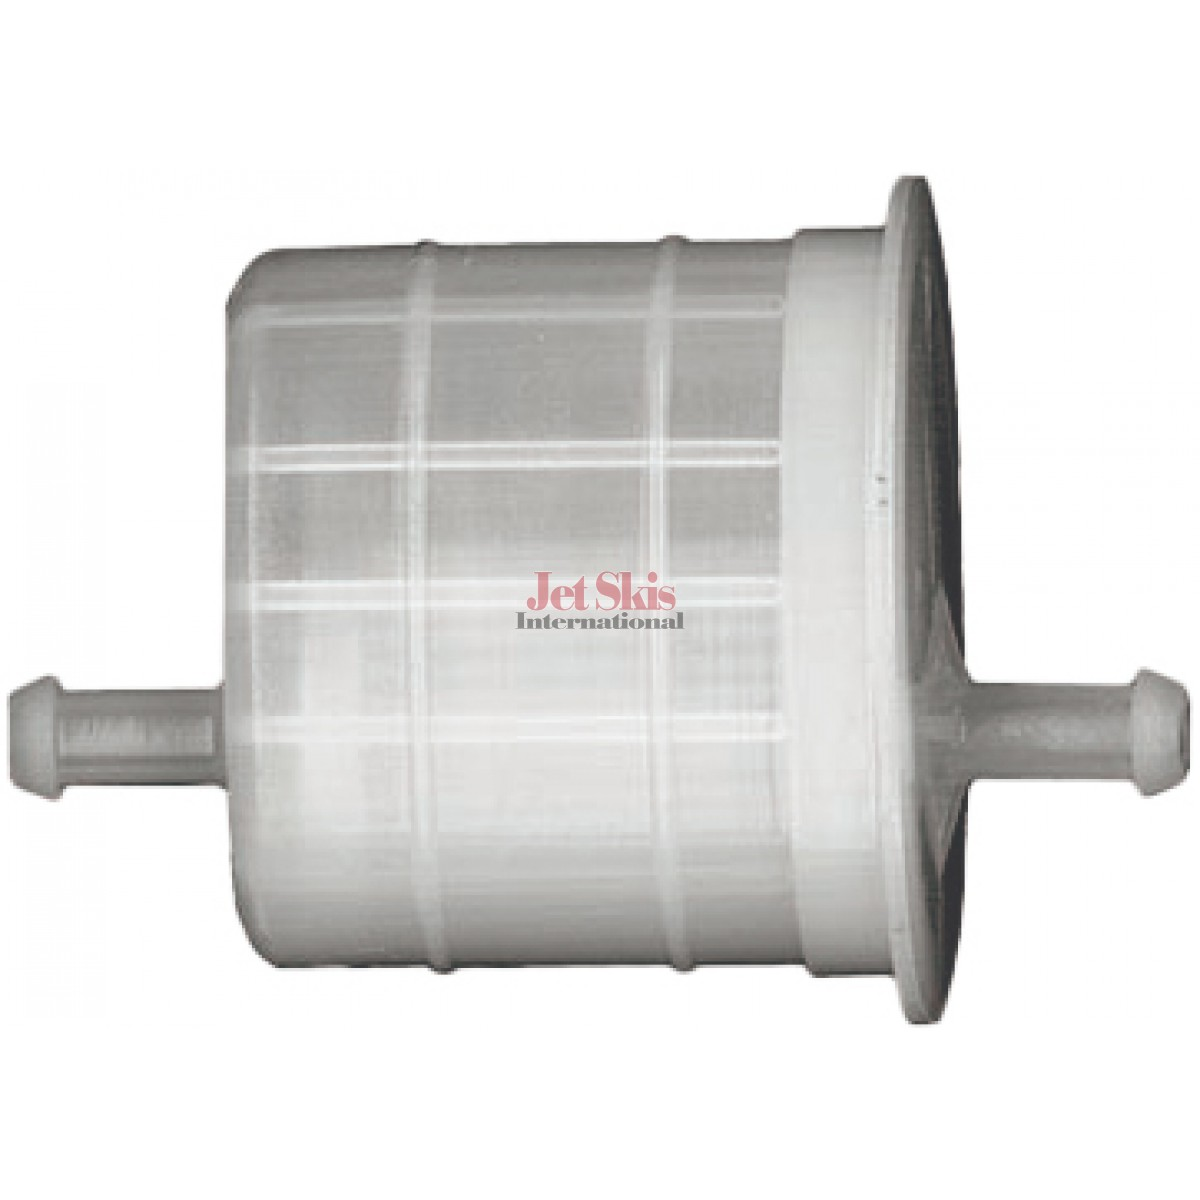 Fuel Filter Yamaha Filters Maintenance Jet Skis Exhaust